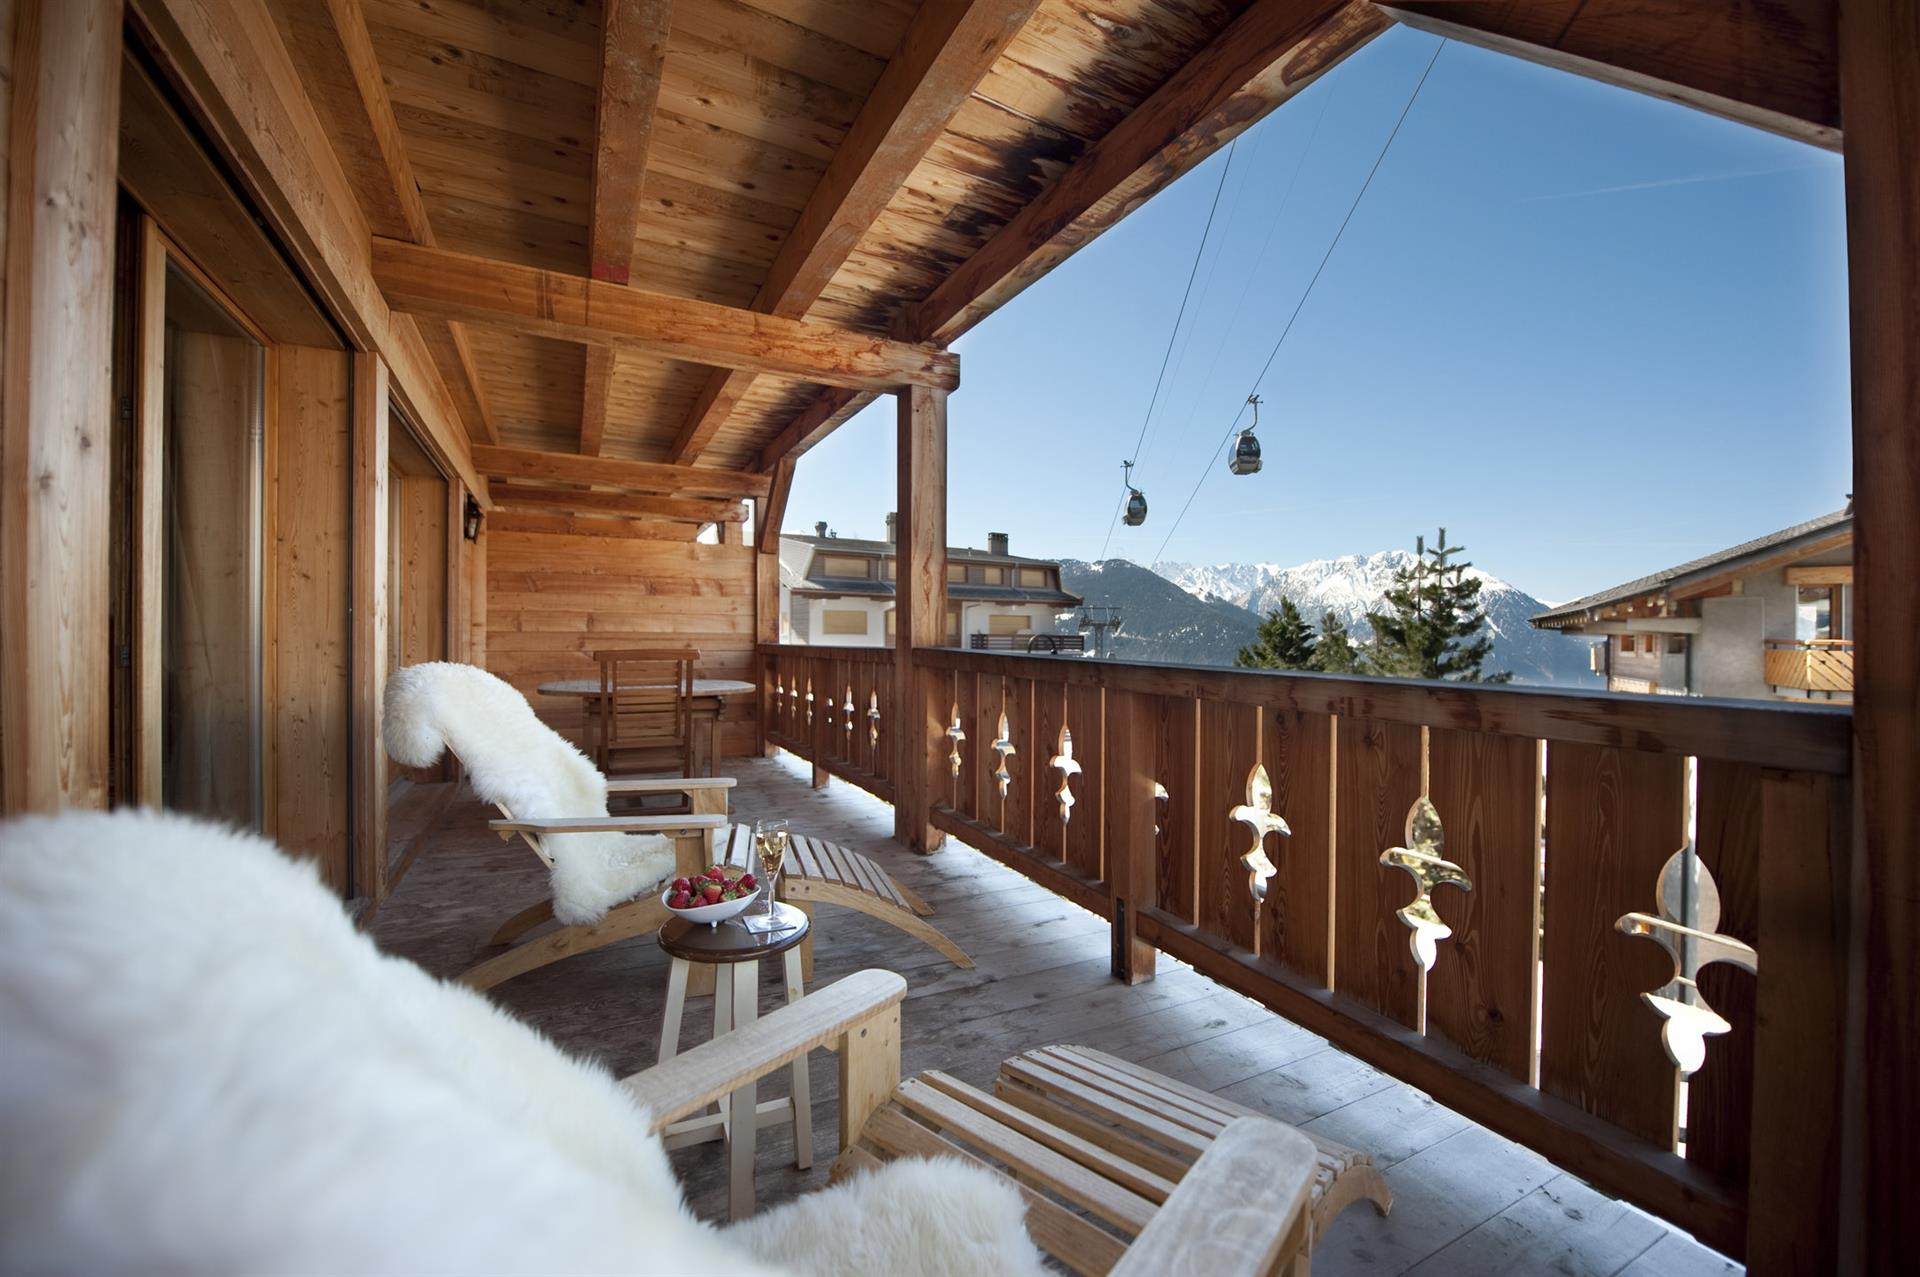 Verbier ski chalets in switzerland with interactive resorts - Chalet deco ...